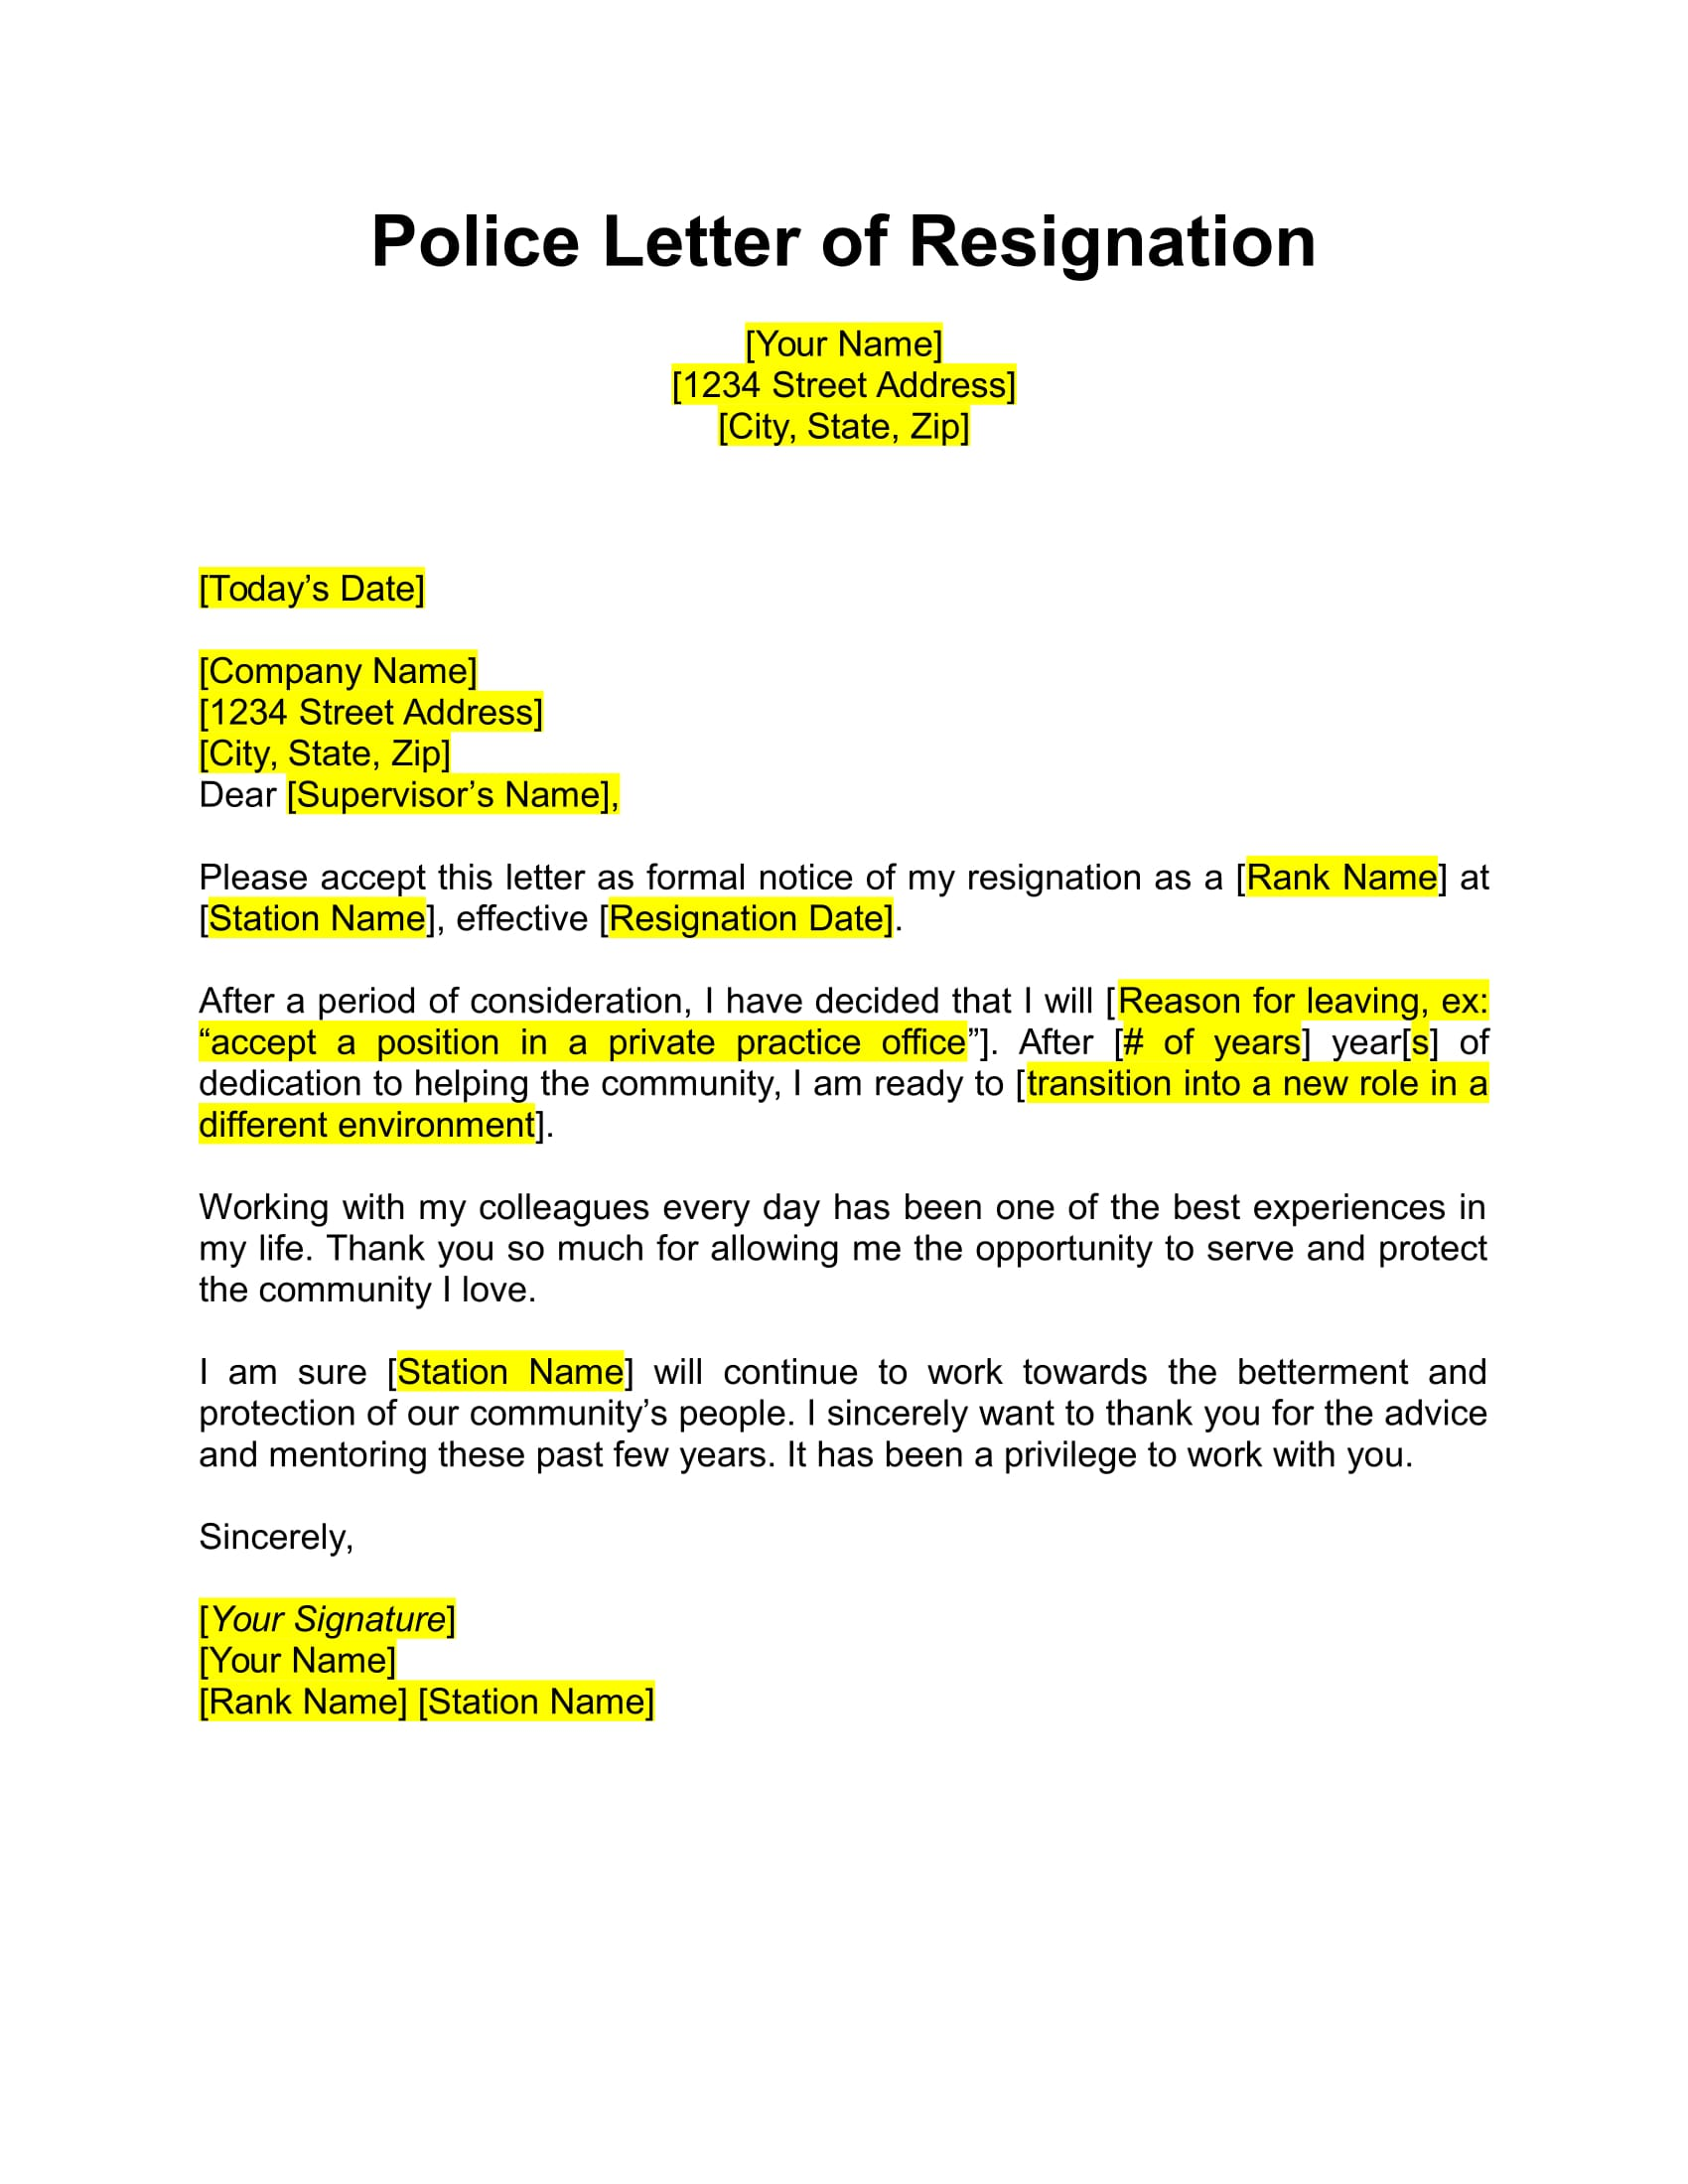 police resignation letter example